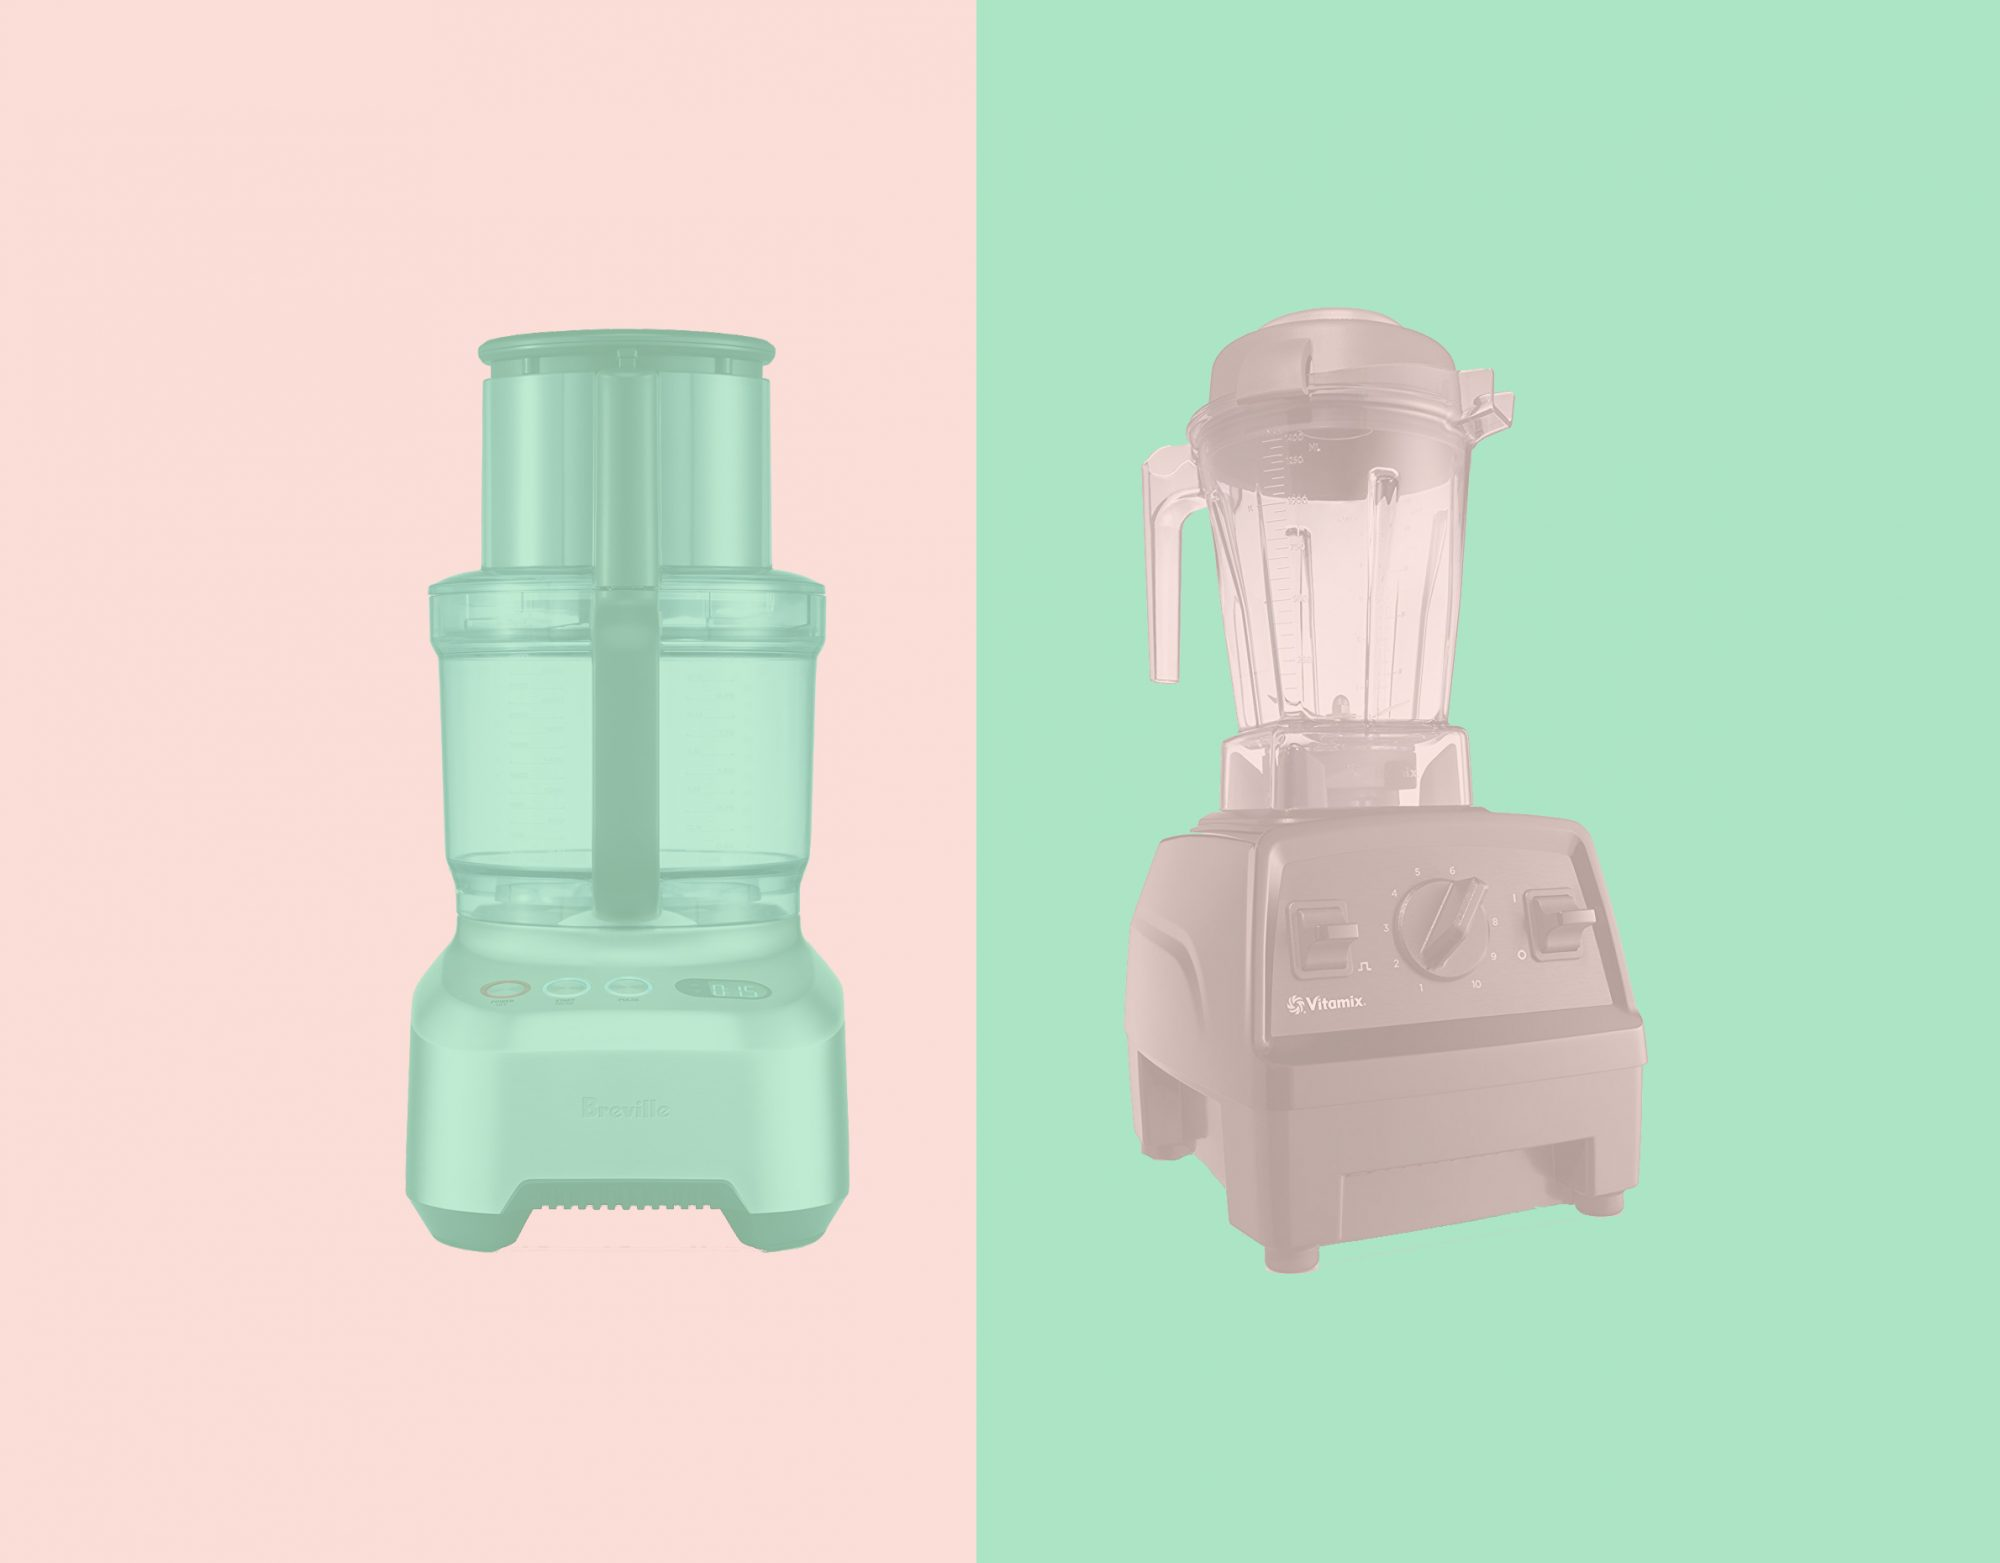 When to Use a Blender Versus a Food Processor, According to Kitchen Appliance Experts